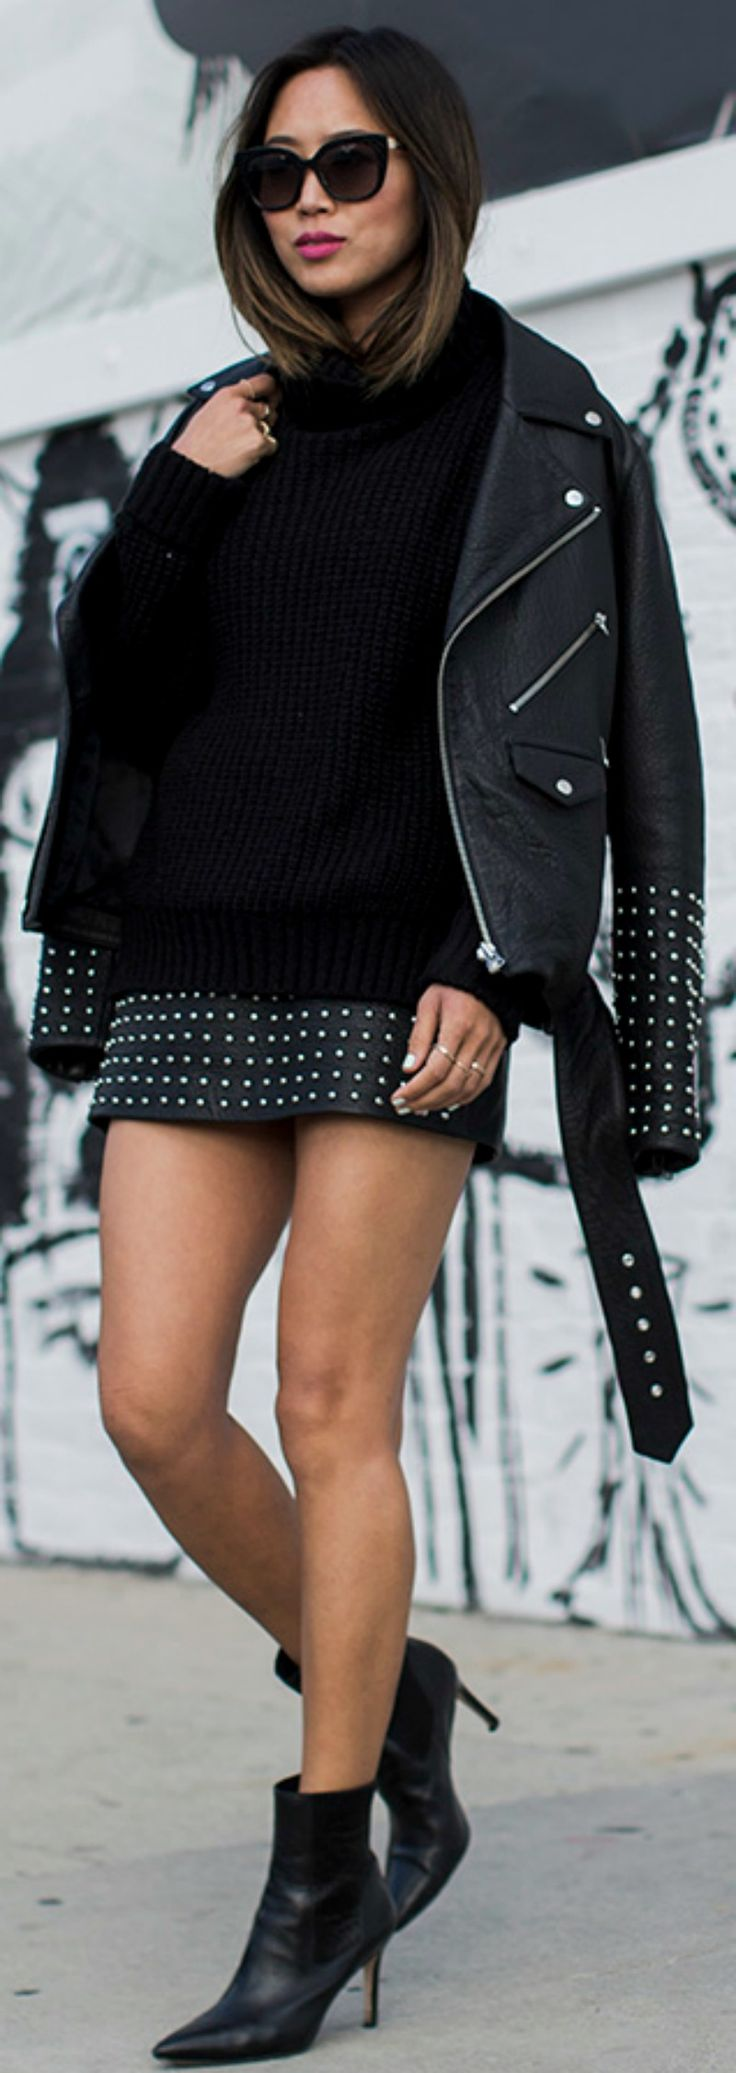 Studded leather is a definite yes! Wear the style like Aimee Song by pairing it with knitwear and a pair of chic leather ankle boots for a winning rocker girl look.   Jacket/Skirt: McQ. #Leather #Fashion